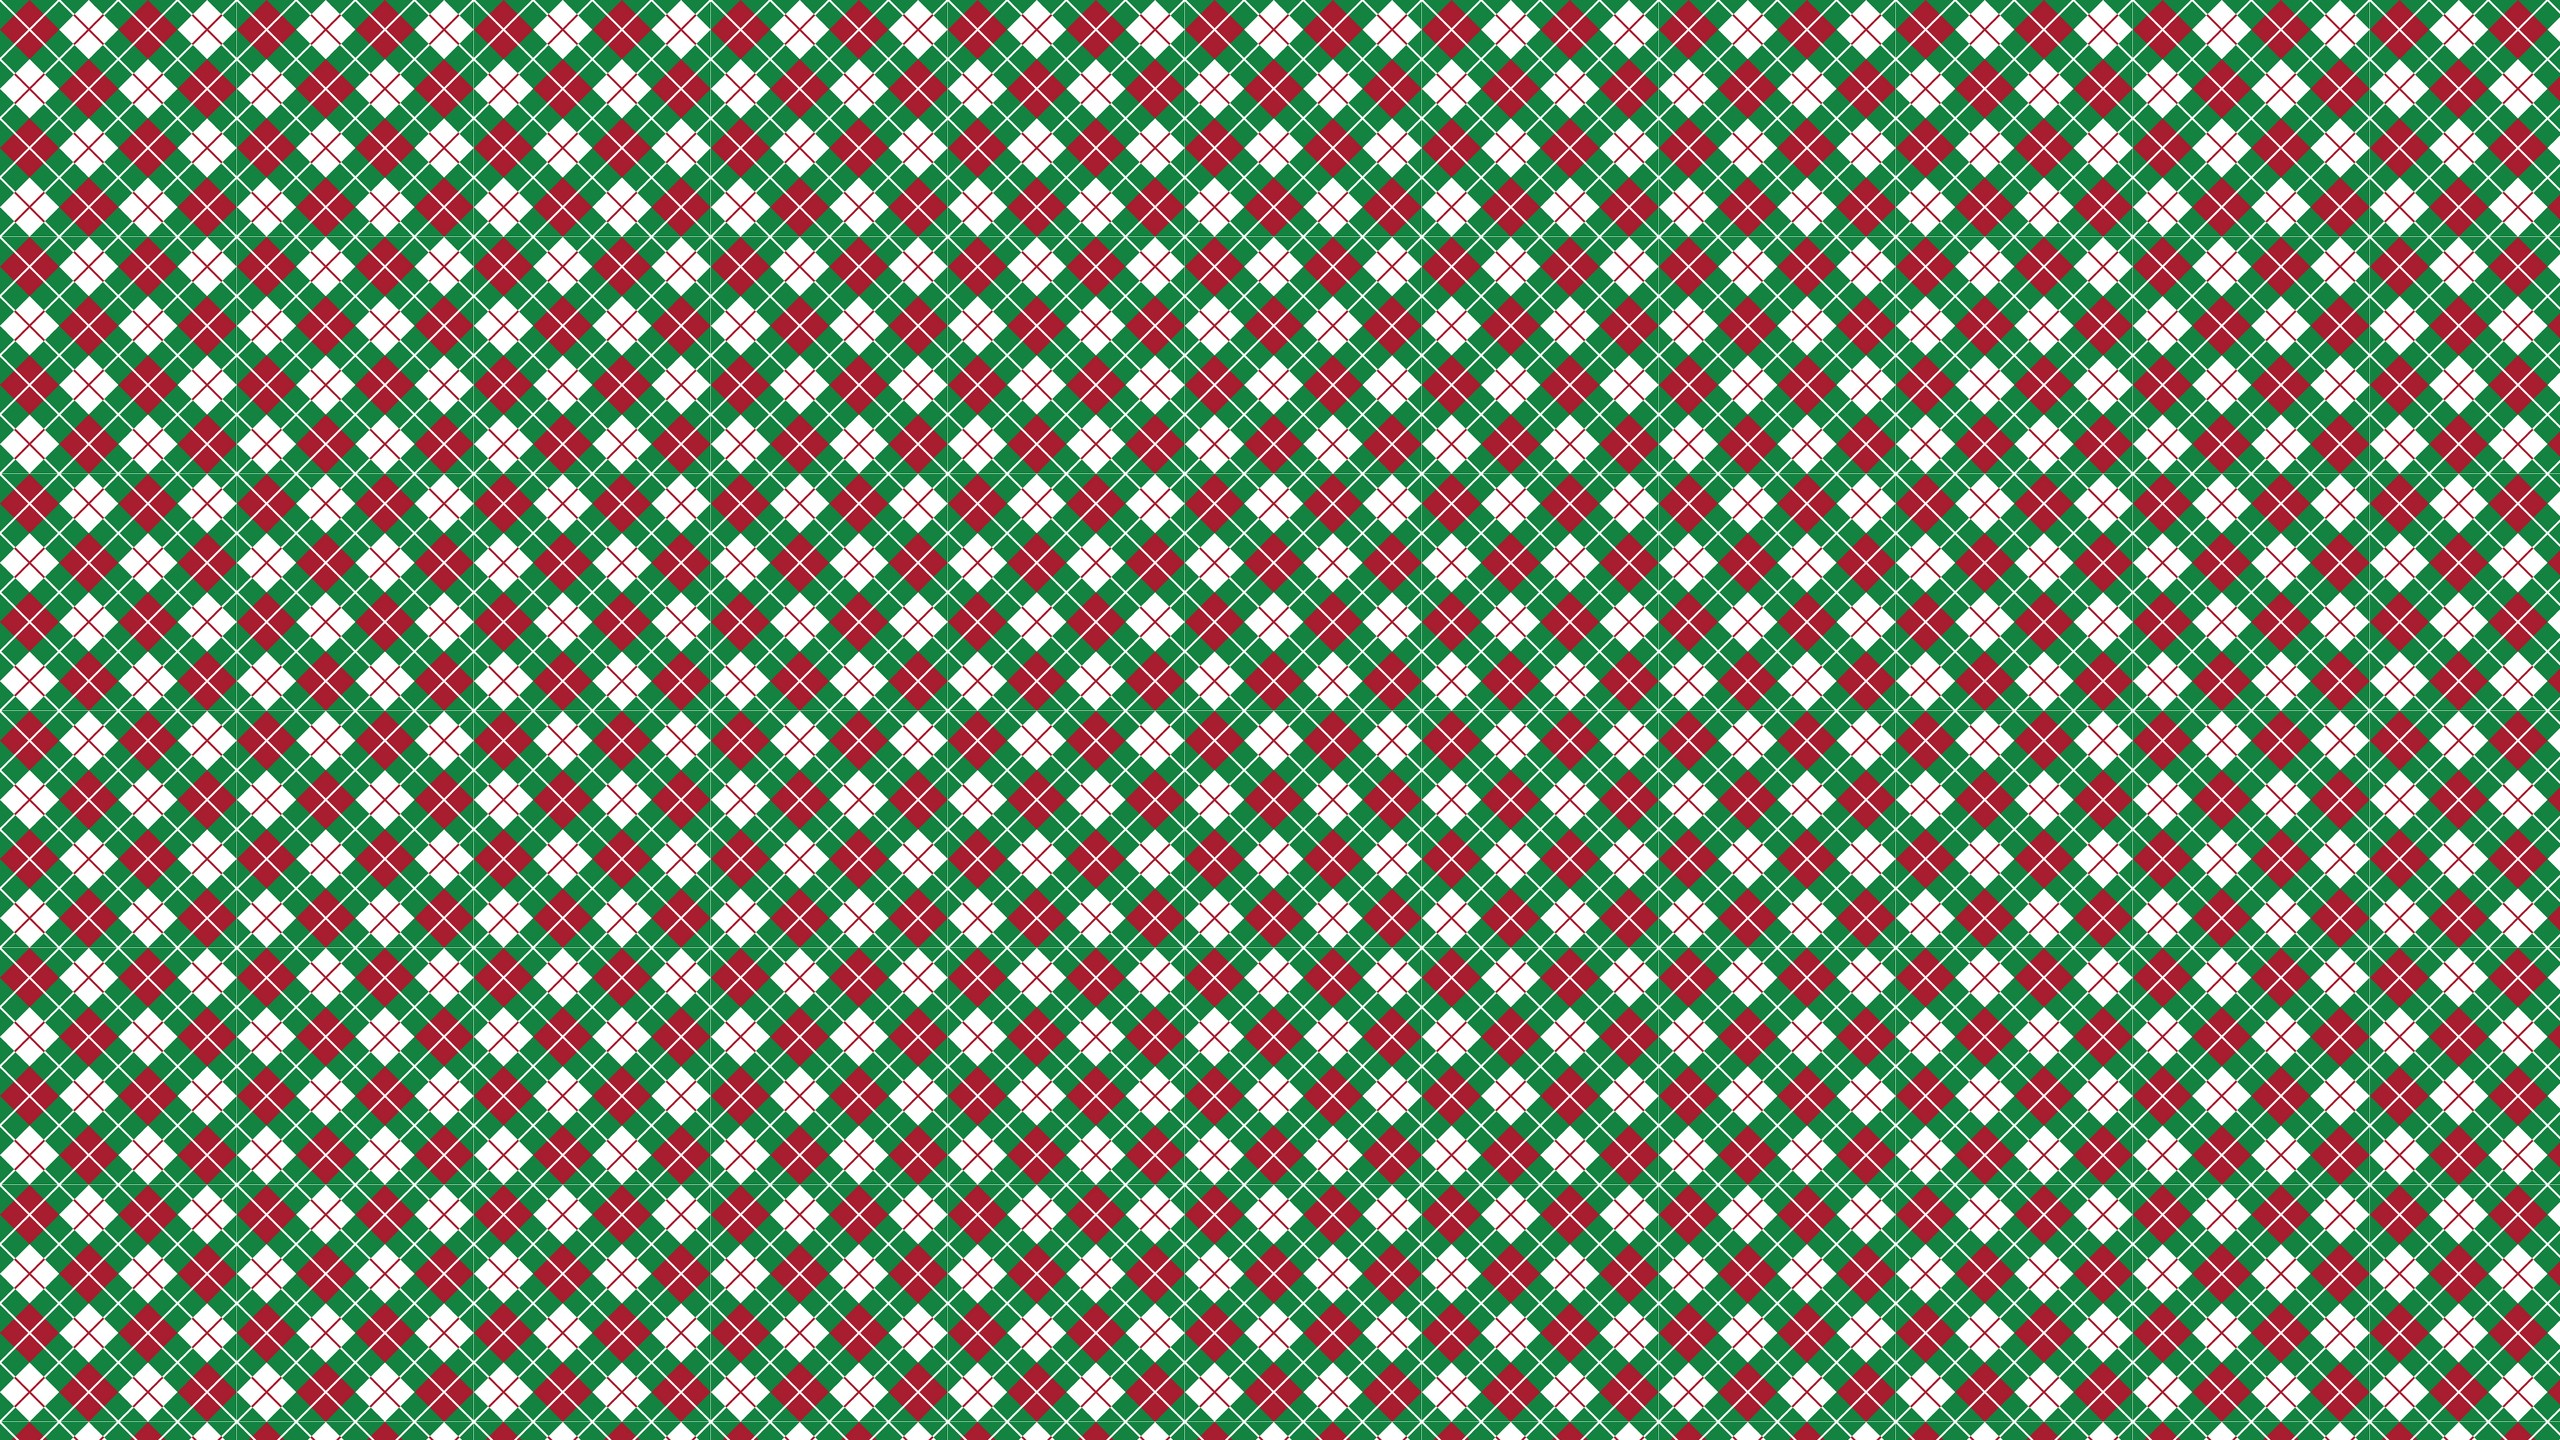 Argyle Iphone Wallpaper 55 Cute Backgrounds Tumblr 183 ① Download Free Stunning Full